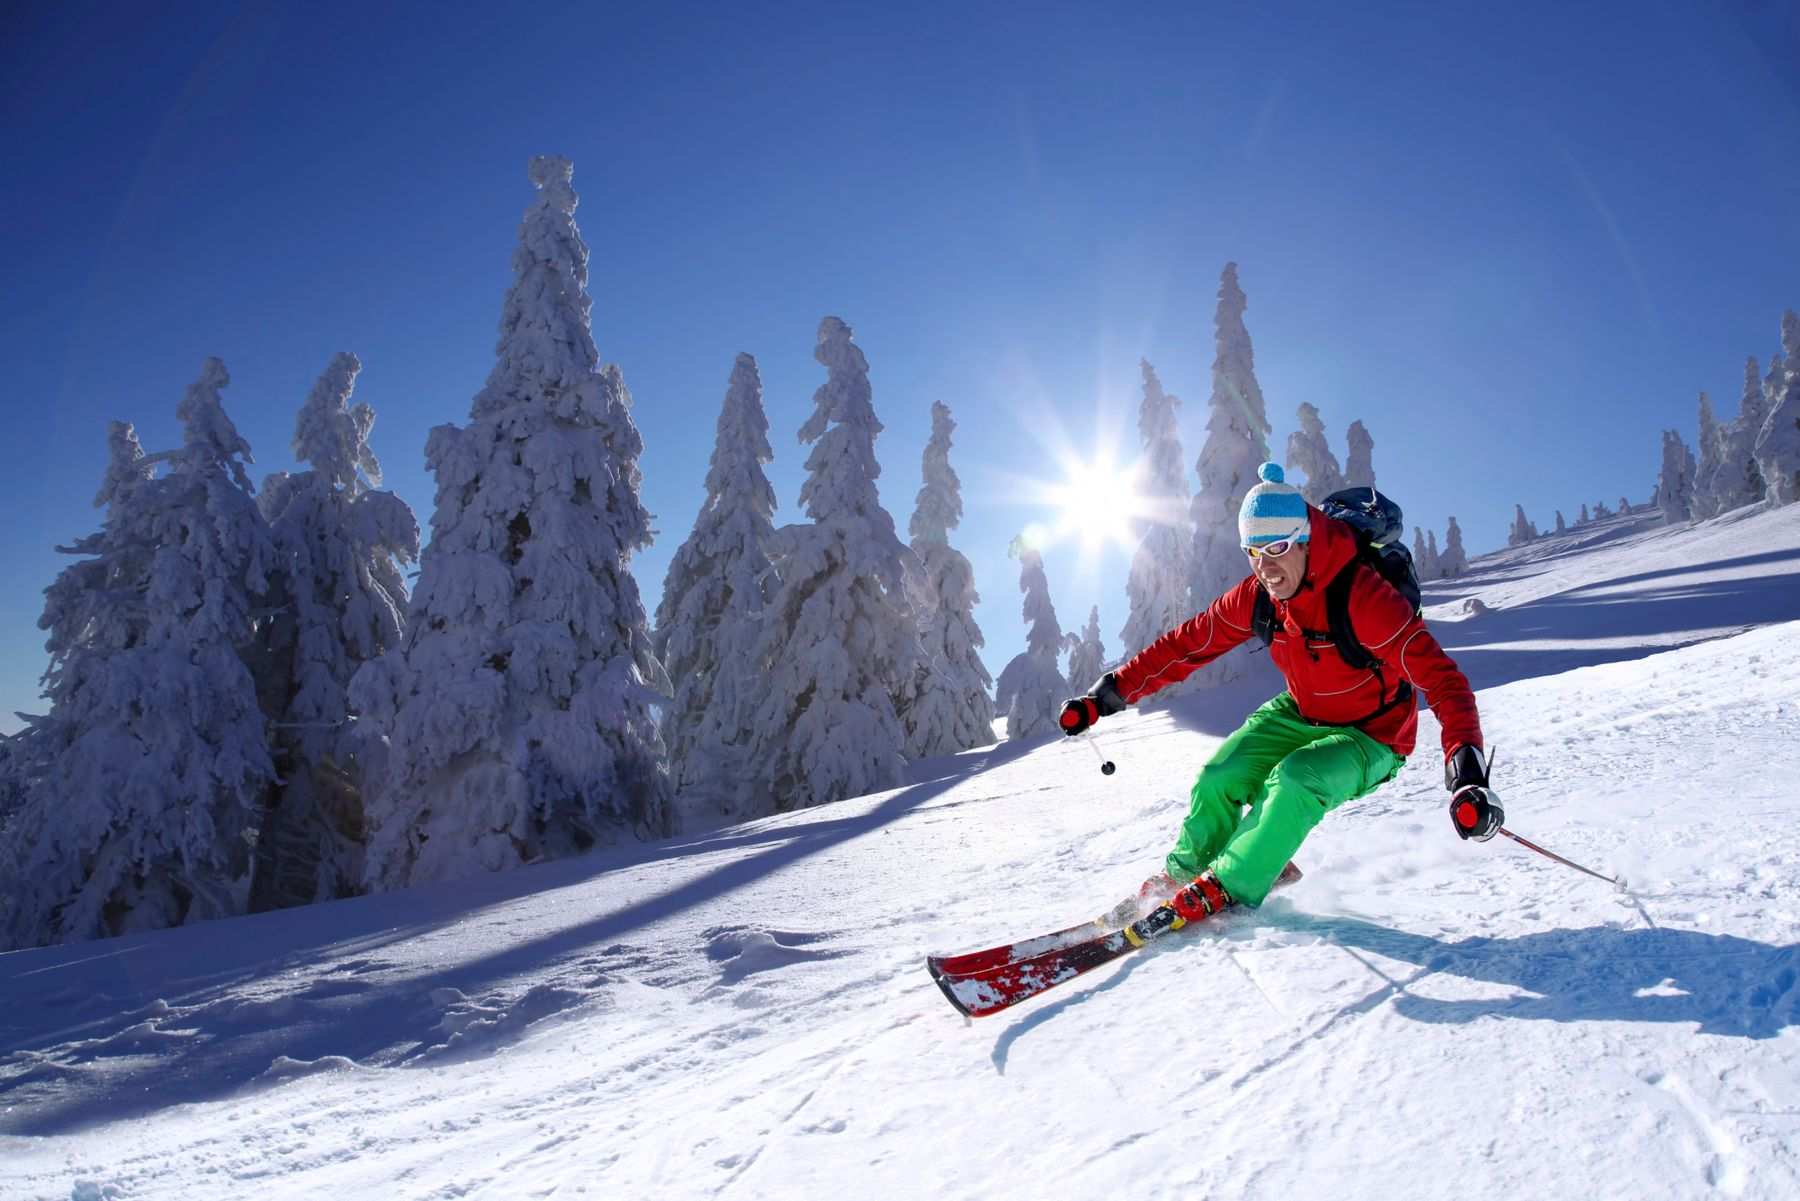 When it comes to Jasper vs Banff skiing, Banff wins out